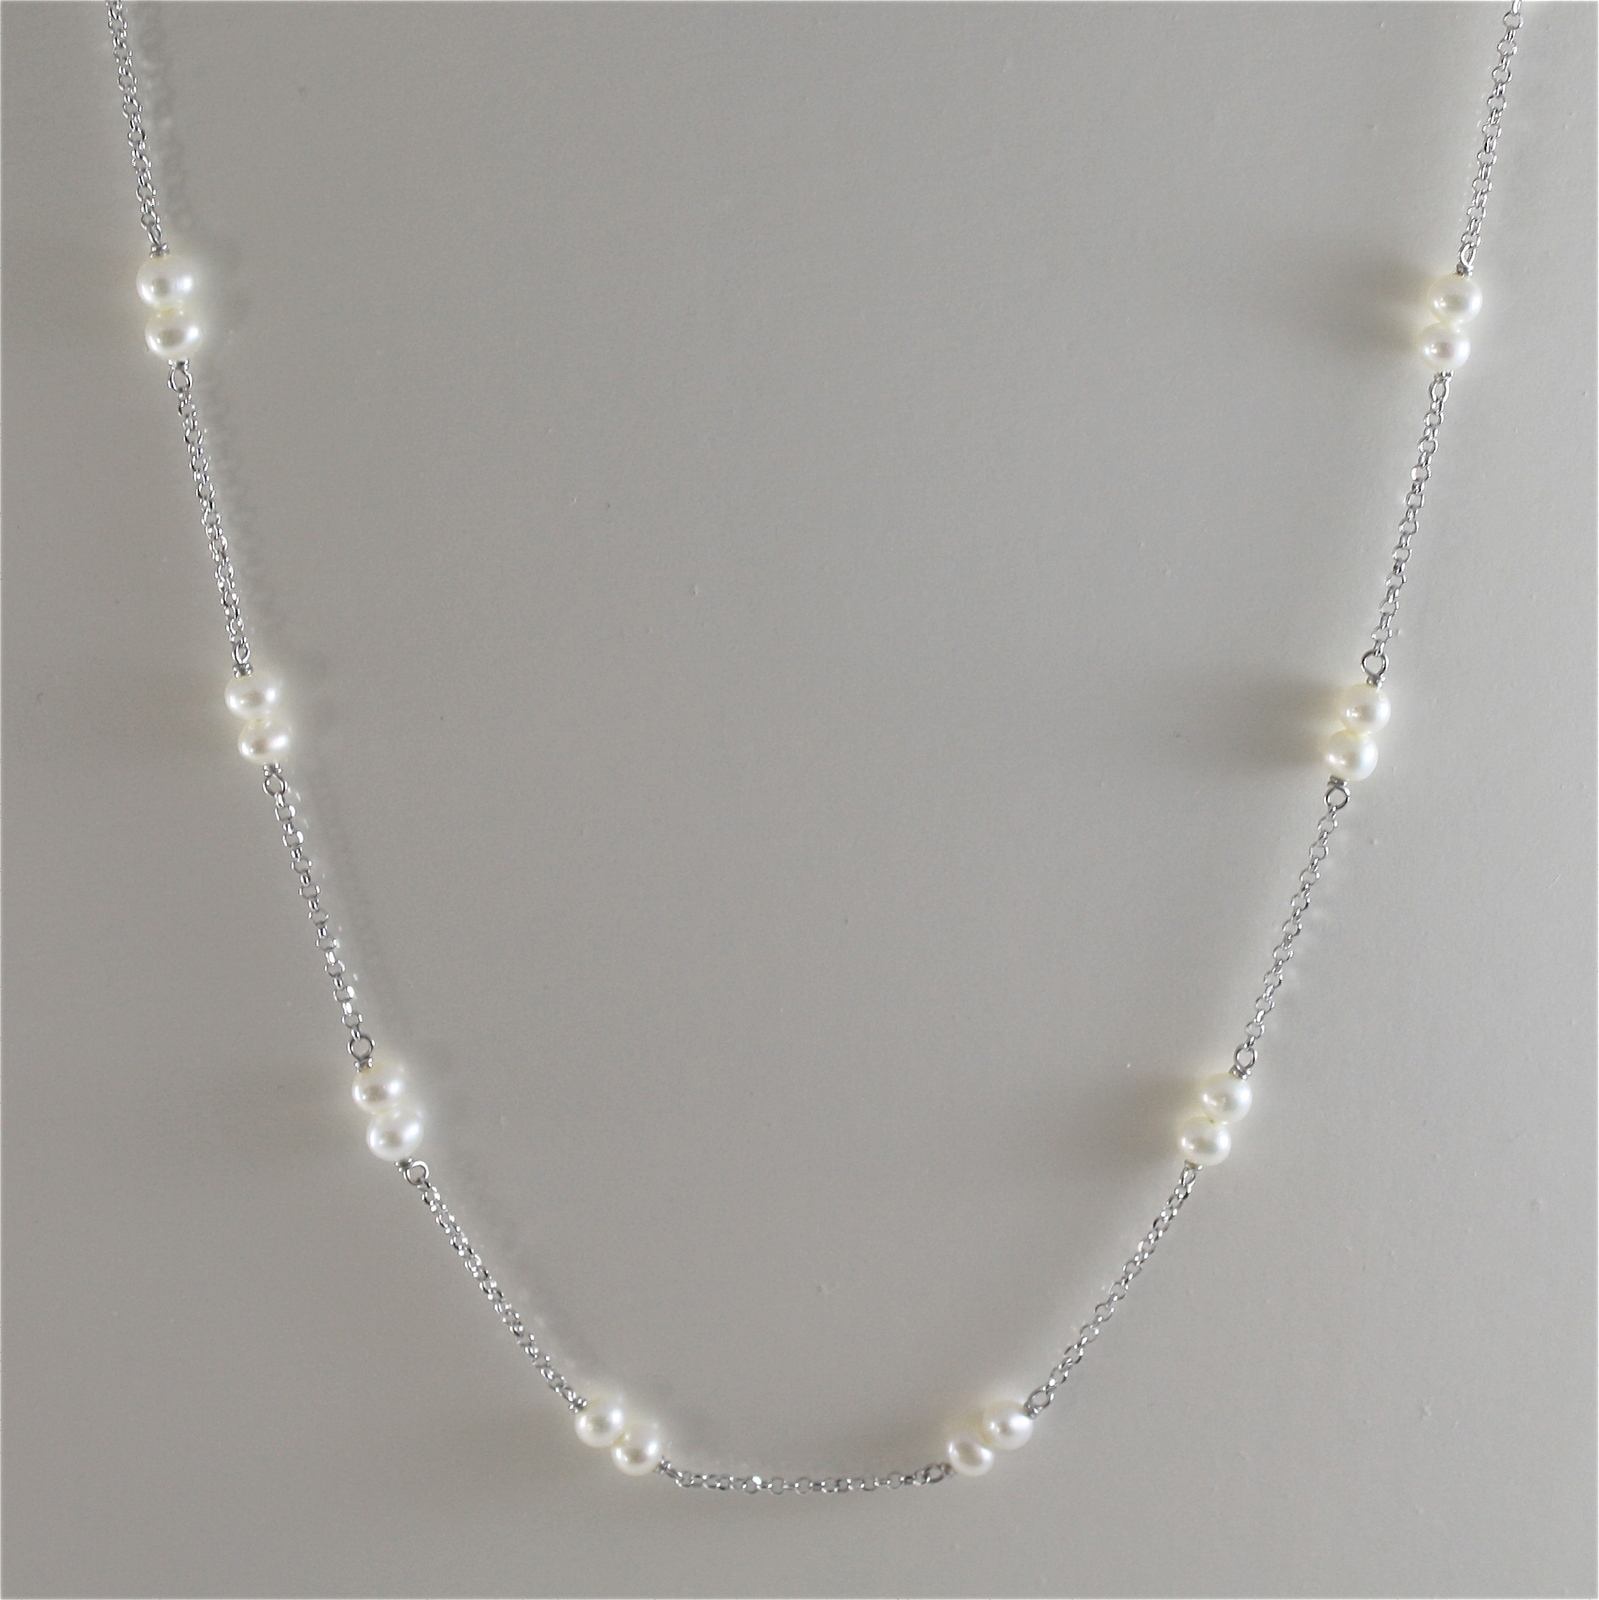 925 RODIUM SILVER NECKLACE WITH WHITE FRESHWATER PEARLS, 17.72 IN, MADE IN ITALY